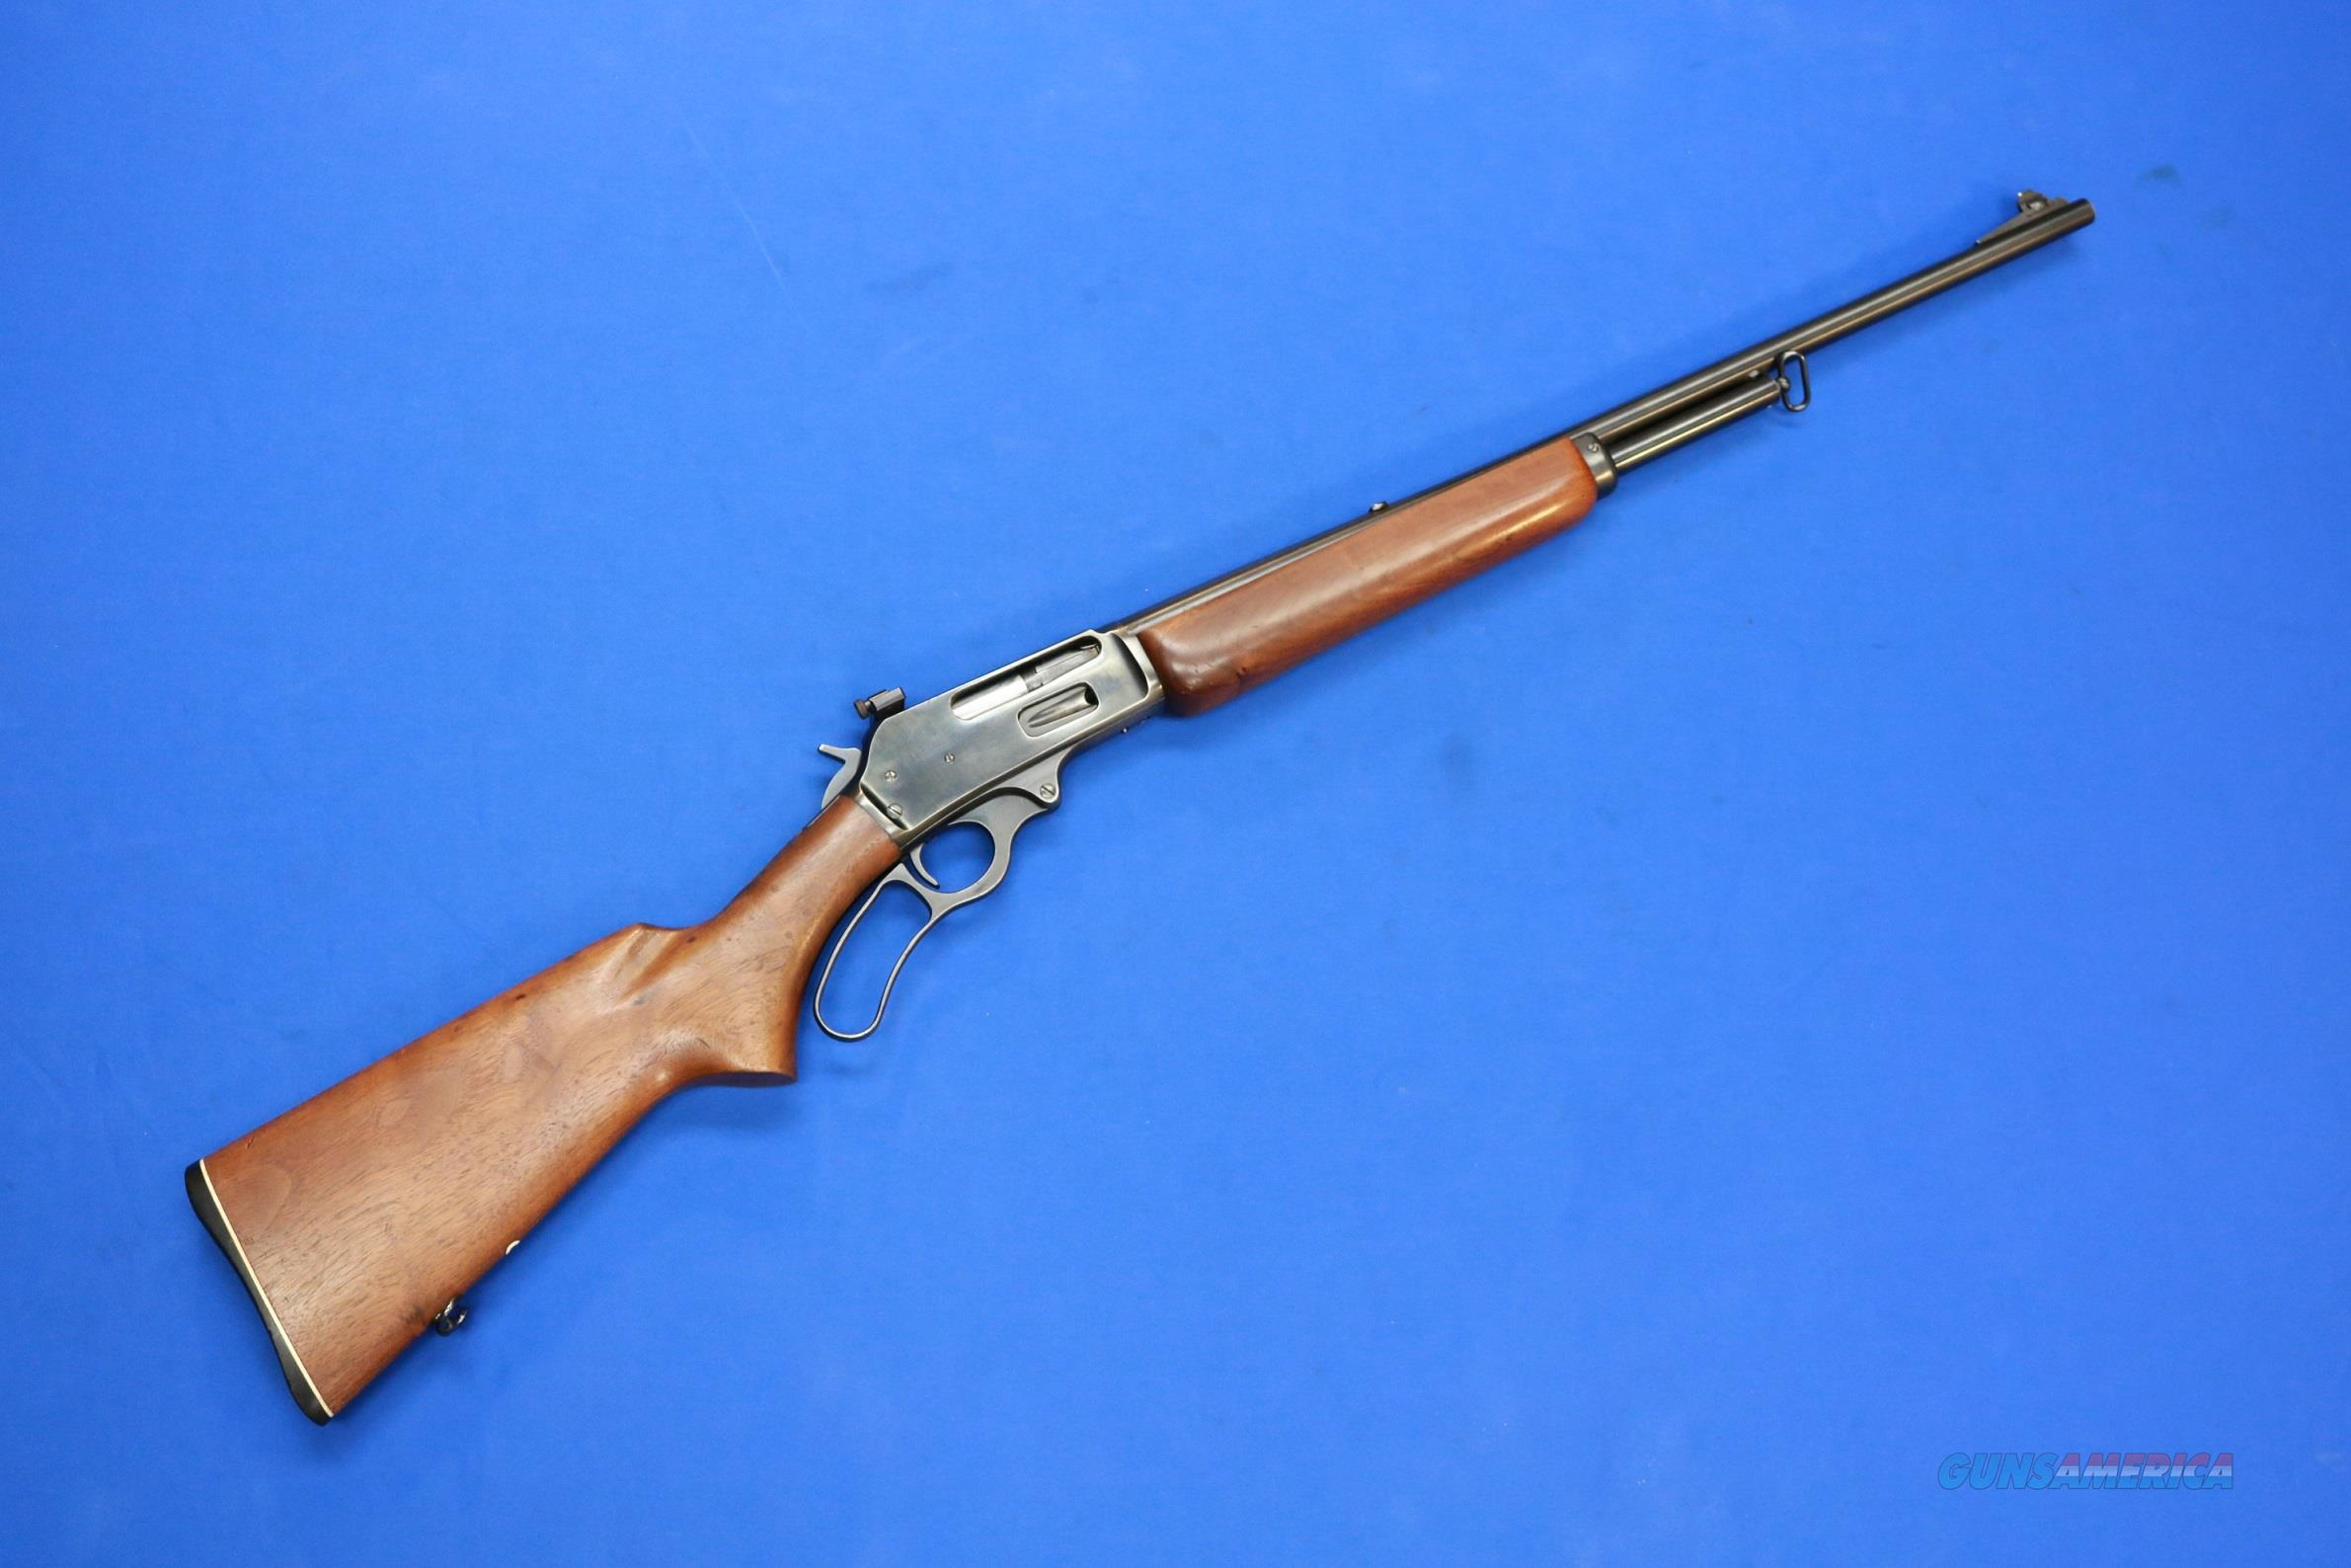 MARLIN 336A RIFLE .35 REM w/WILLIAMS SIGHT - 1950  Guns > Rifles > Marlin Rifles > Modern > Lever Action